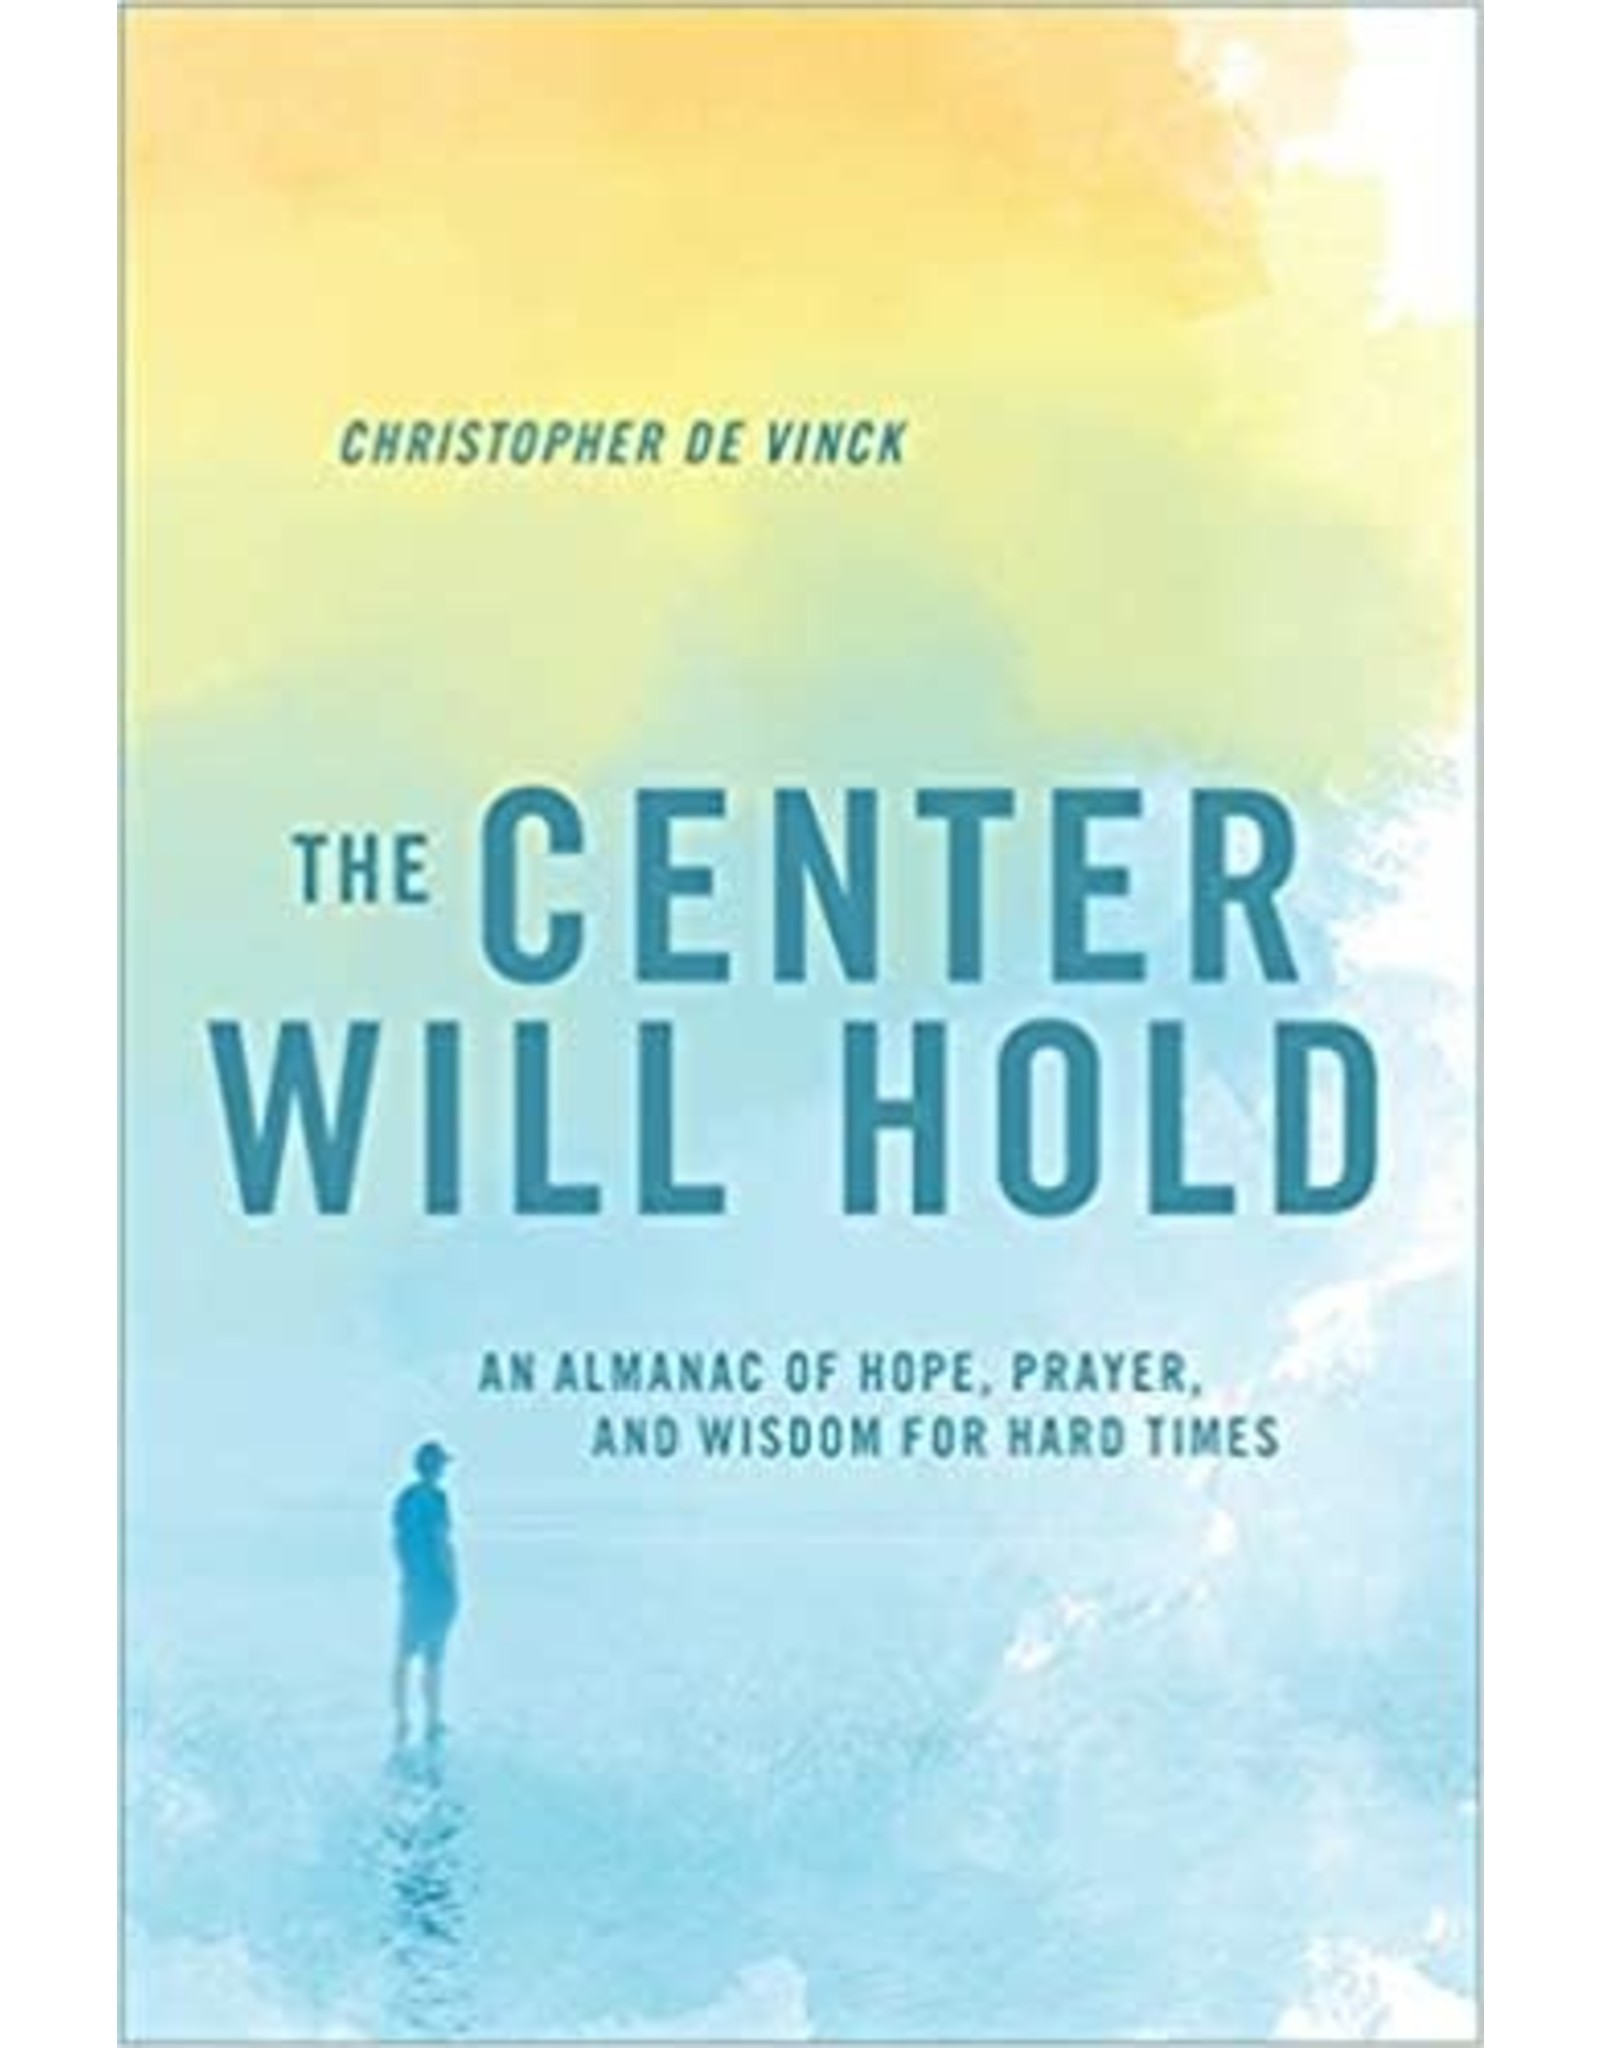 The Center Will Hold: An Almanac of Hope, Prayer, & Wisdom for Hard Times